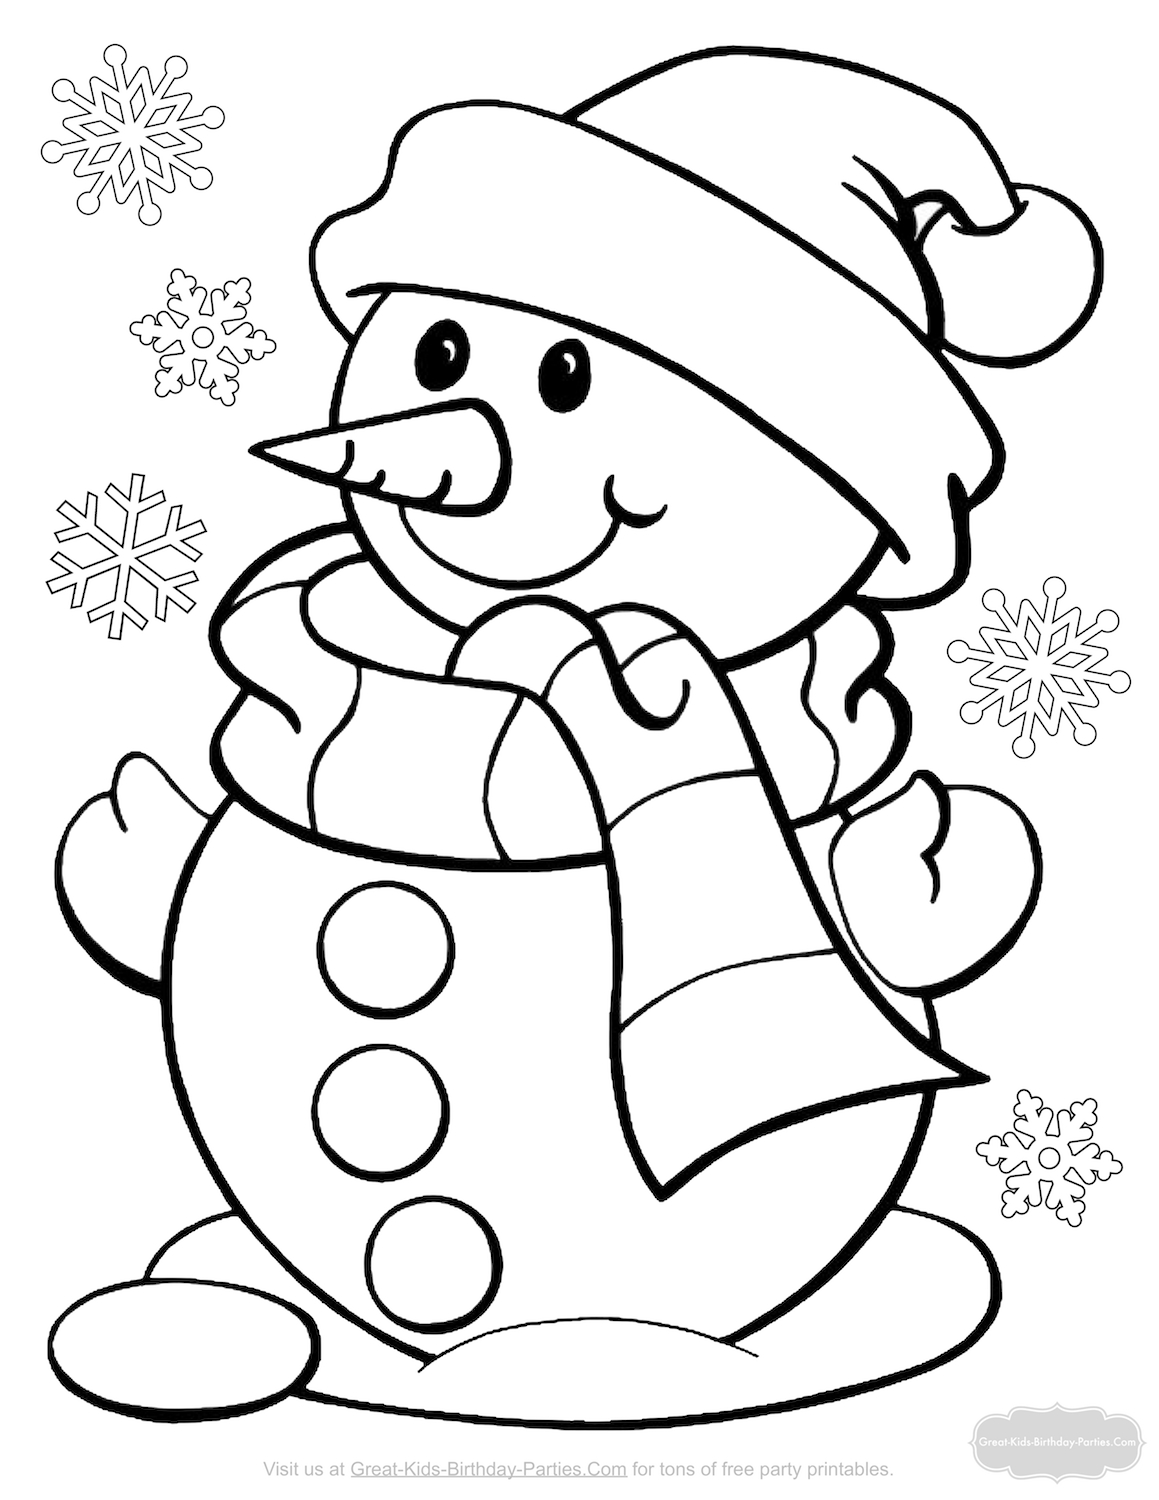 Frosty The Snowman Christmas Coloring Pages